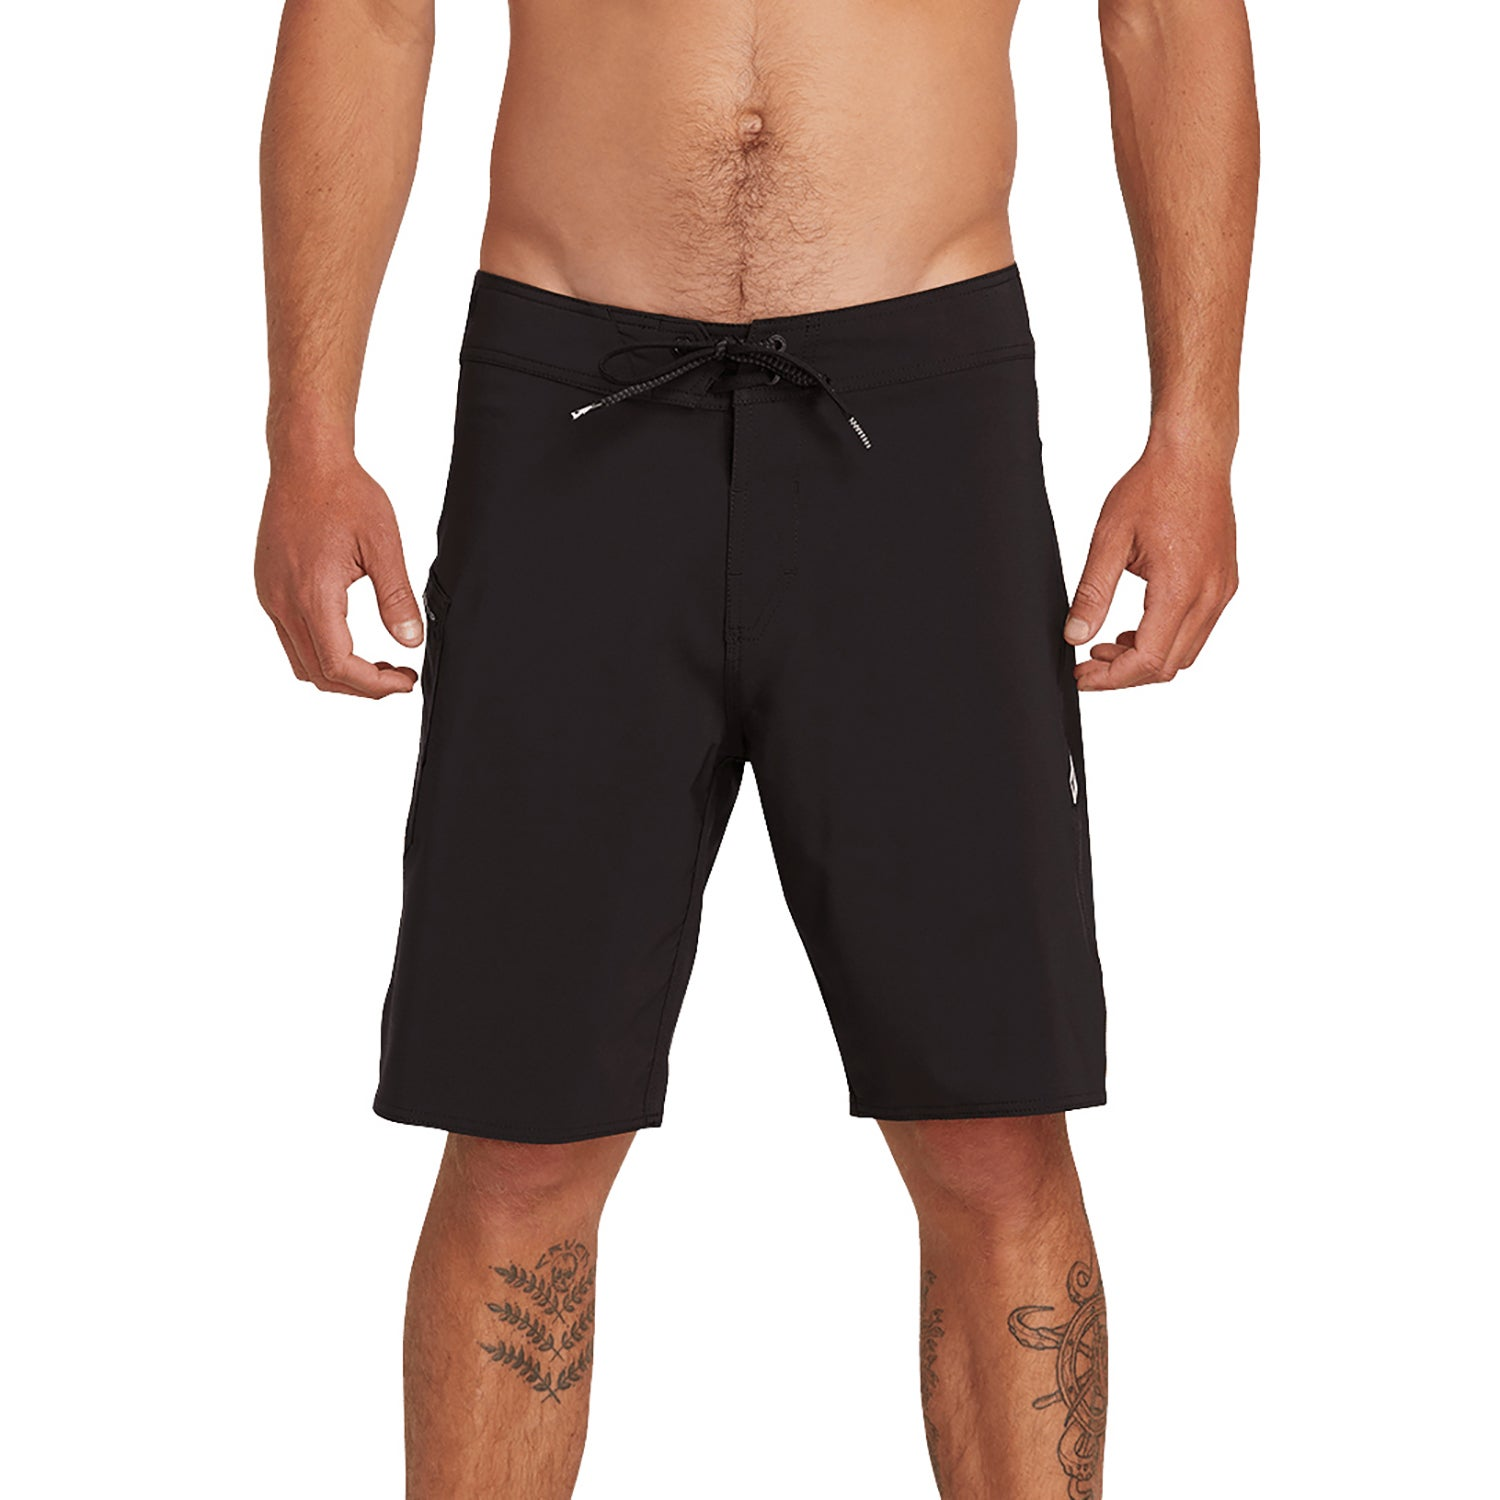 f6ceef2784 Volcom Lido Solid Mod 20 Inch Mens Shorts Boardshorts - Black All ...